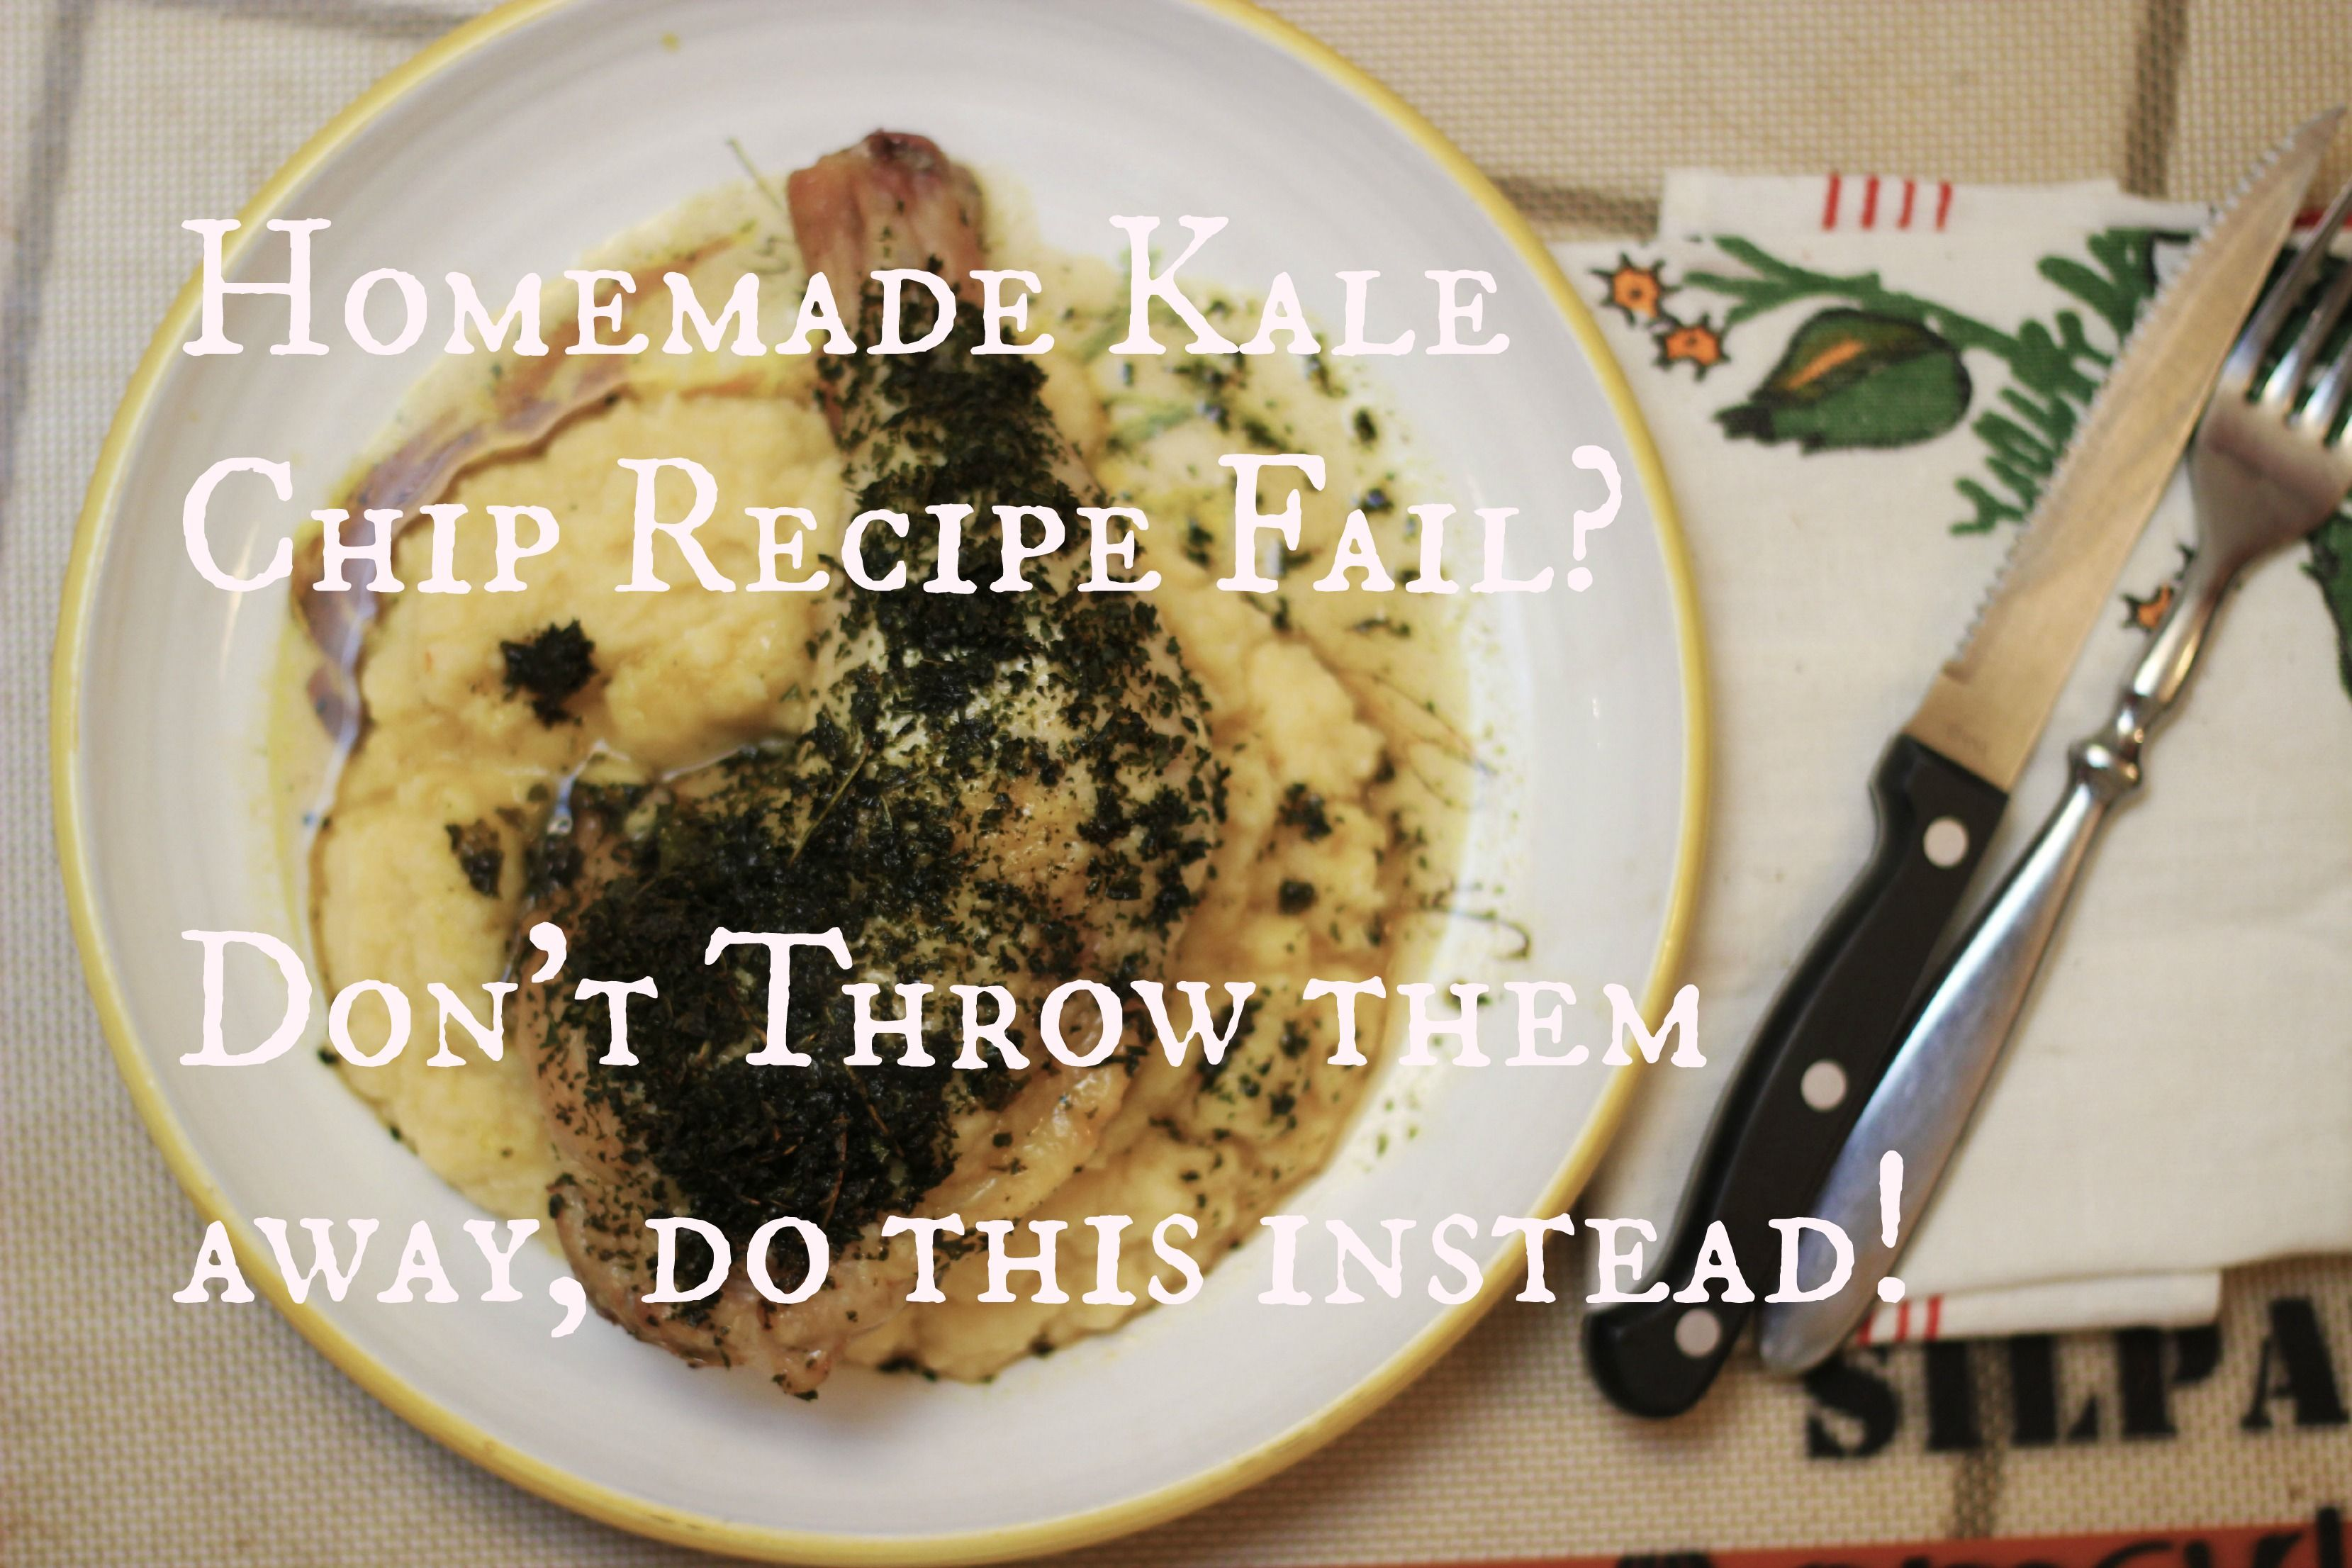 #kale #chip #recipe gone wrong?? Don't throw it away!! Make this!